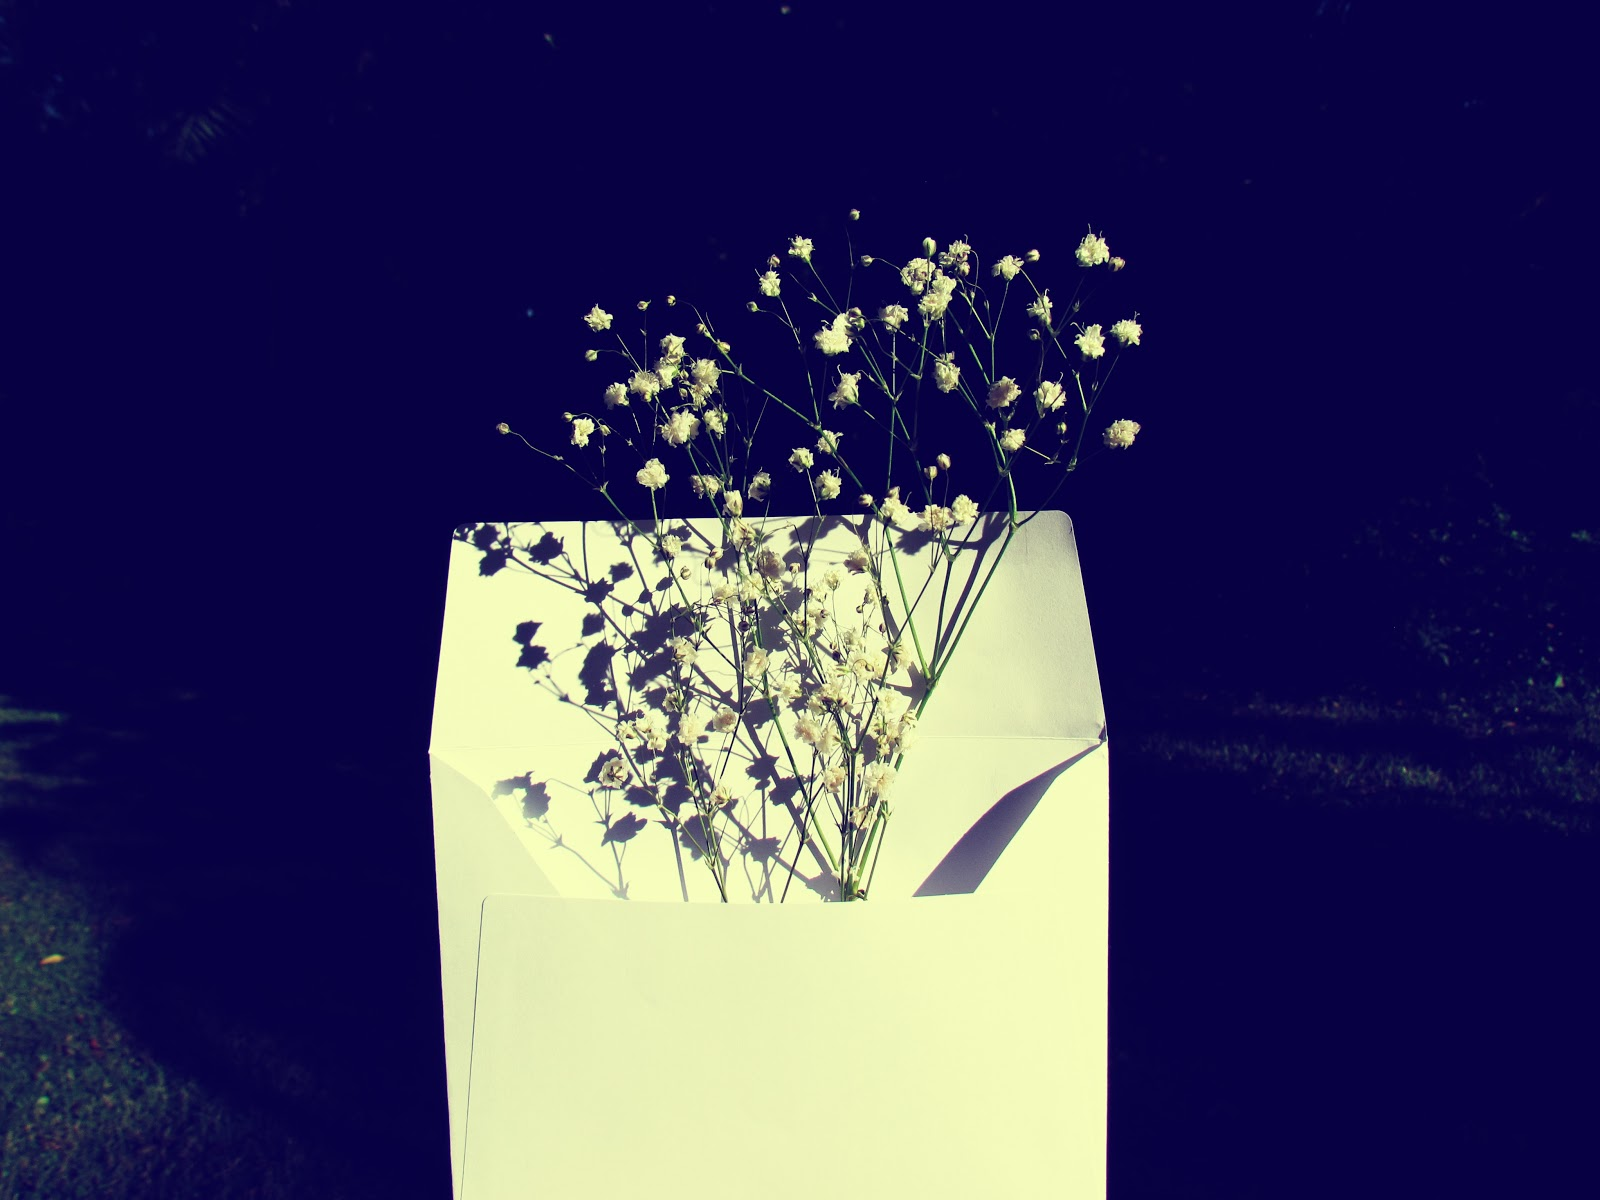 Nature in an Envelope + White Envelope Stuffed With White Baby's Breath Flowers Display Gloom and Glow Shadow Background